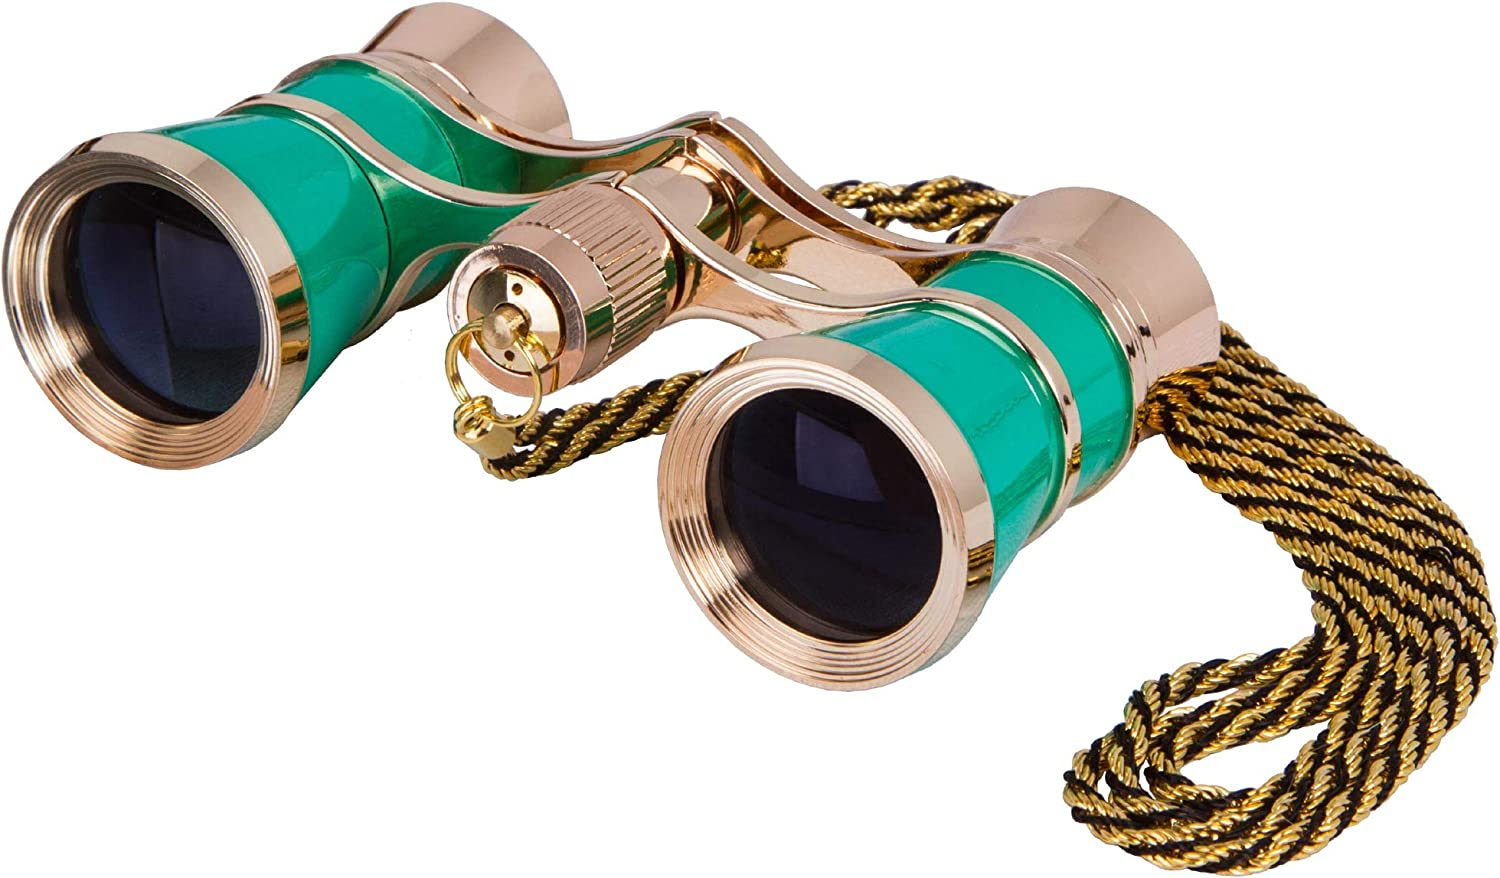 Levenhuk Broadway 325C Lime Opera Glasses – Theater Binoculars with Removable Chain